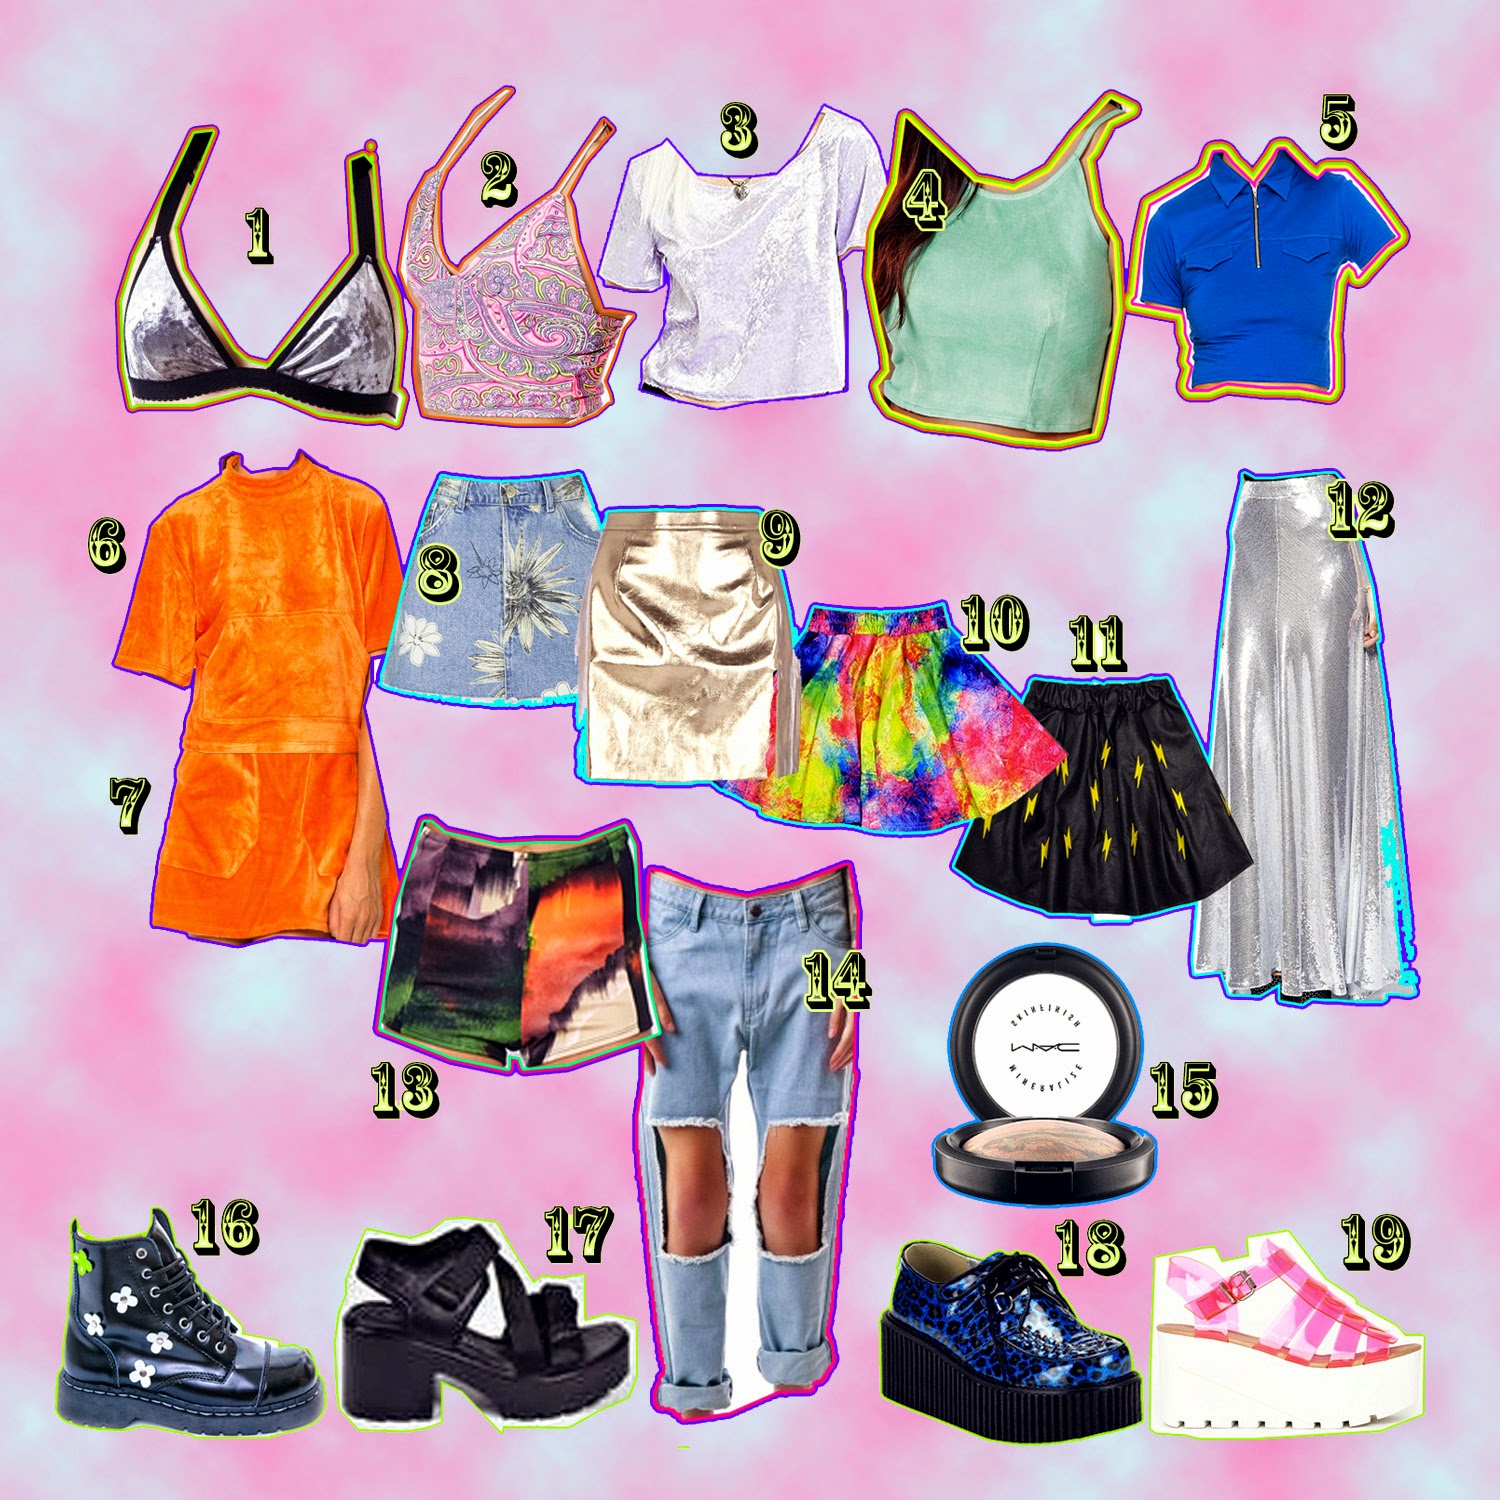 MY 'I SHOULD BE LOOKING FOR AUTUMN CLOTHES BUT SUMMER IS BETTER' WISHLIST// AUGUST